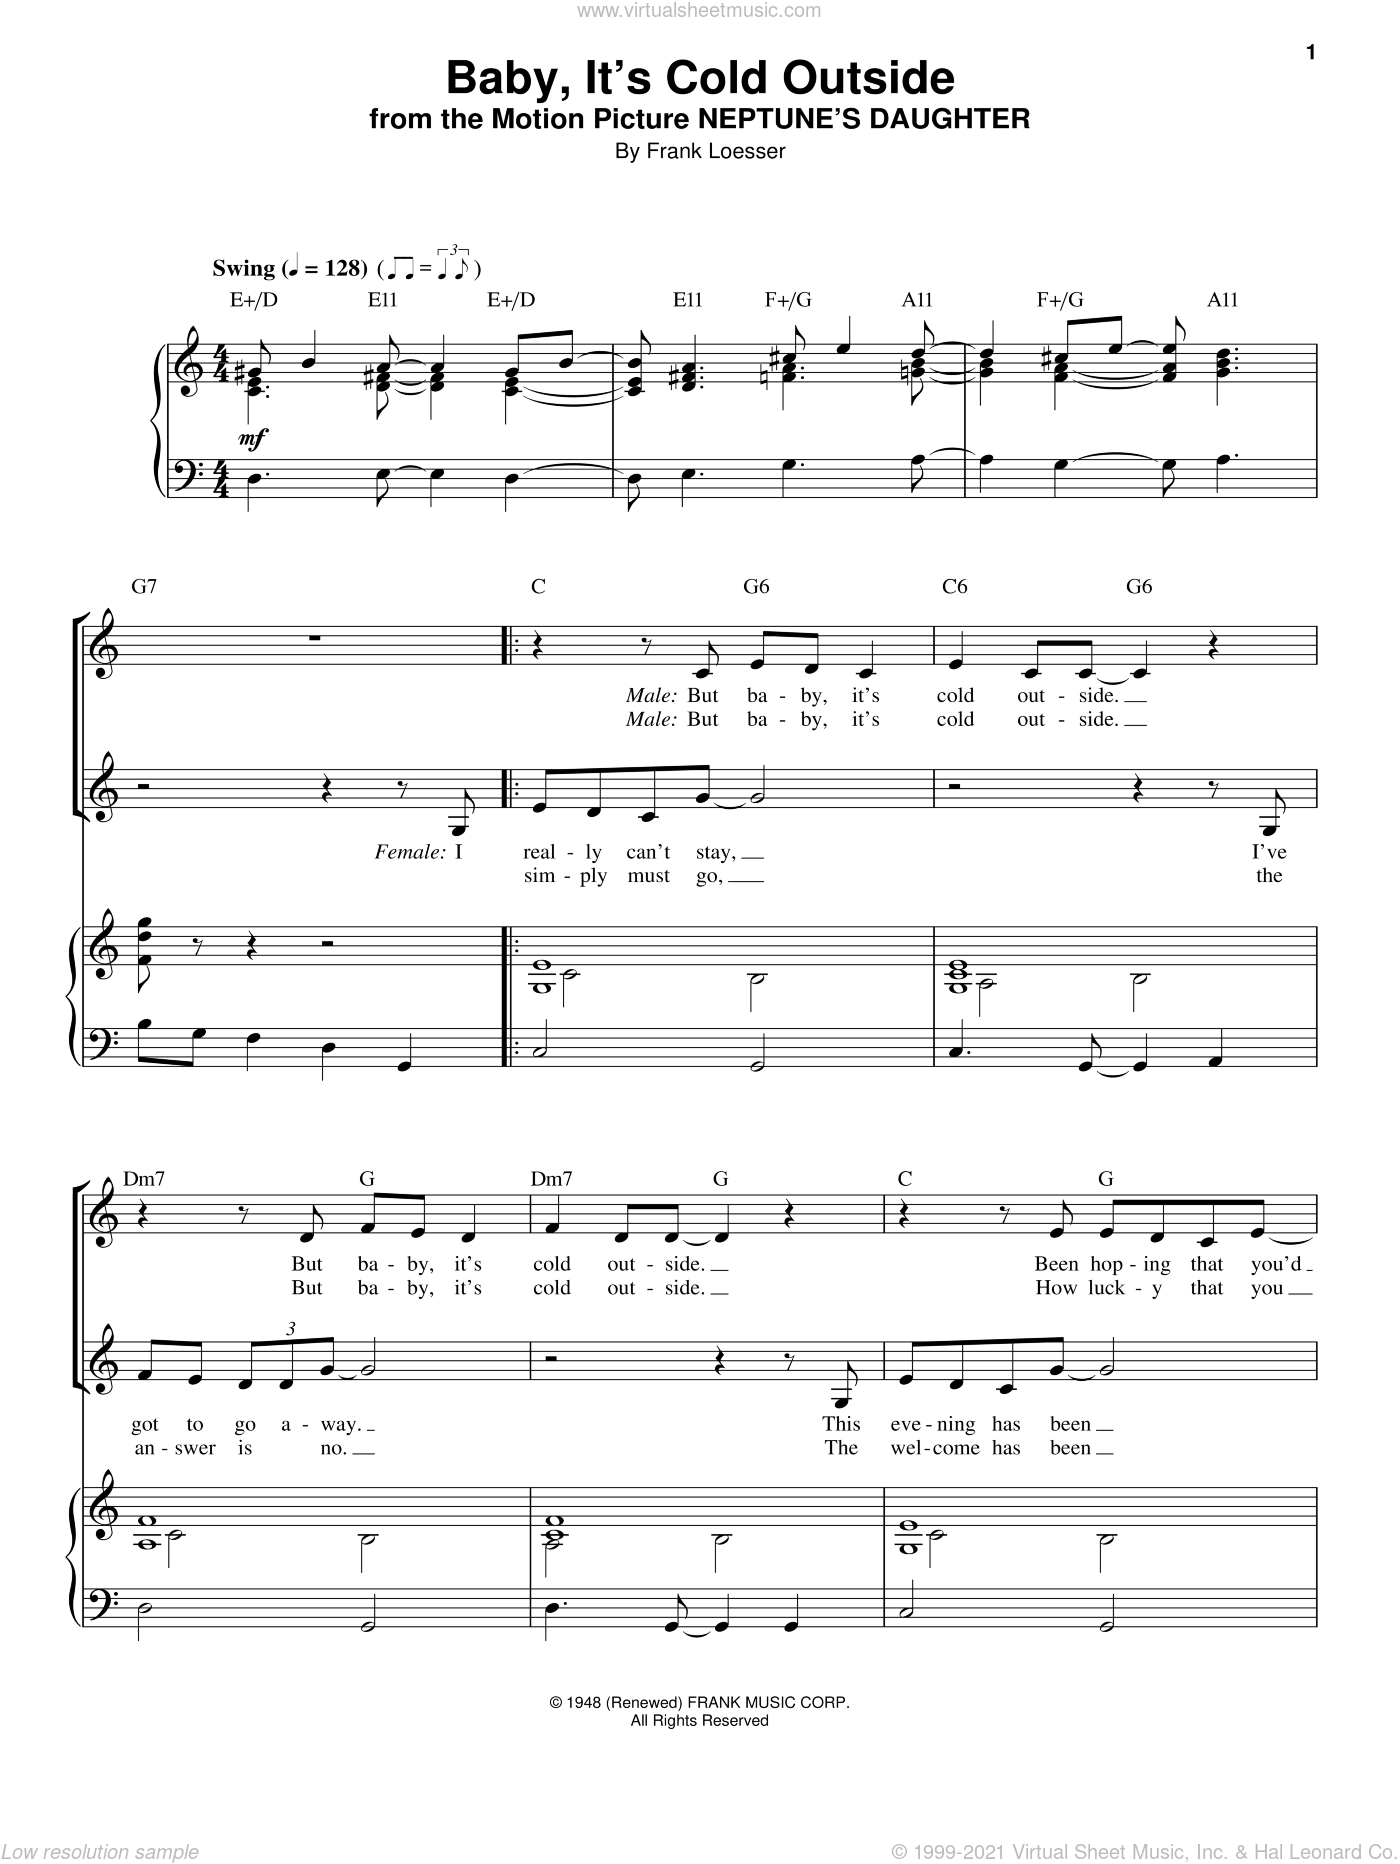 Baby, It's Cold Outside sheet music for voice and piano by Tom Jones & Cerys Matthews, Louis Armstrong and Frank Loesser, intermediate skill level